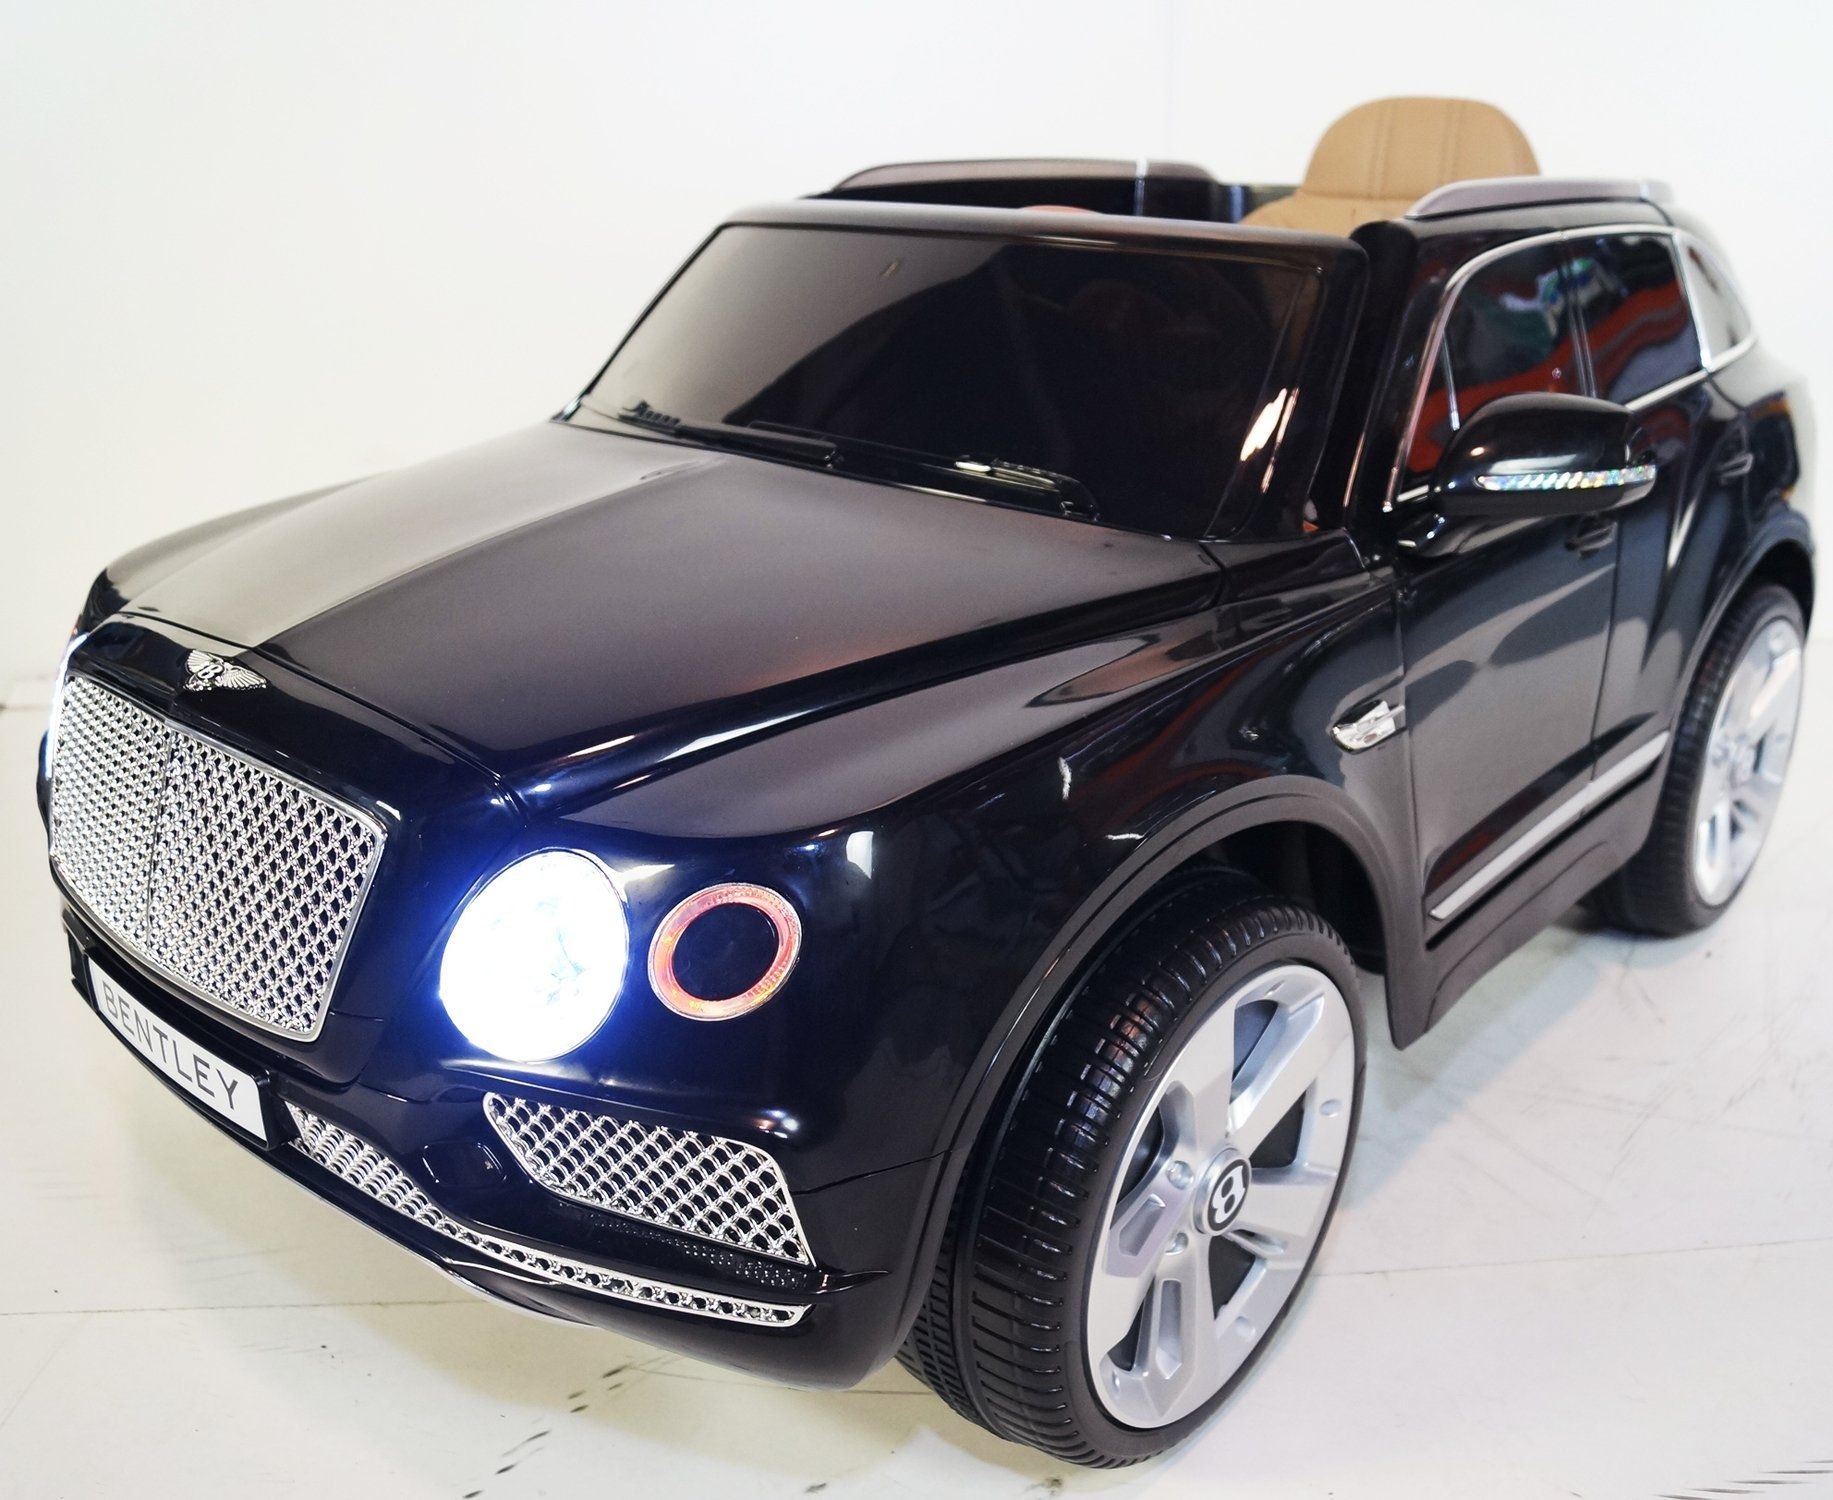 Bentley Bentayga Style Inspired 12v Kids Ride-On Car | BLACK Cars & SUVs Mini Motos